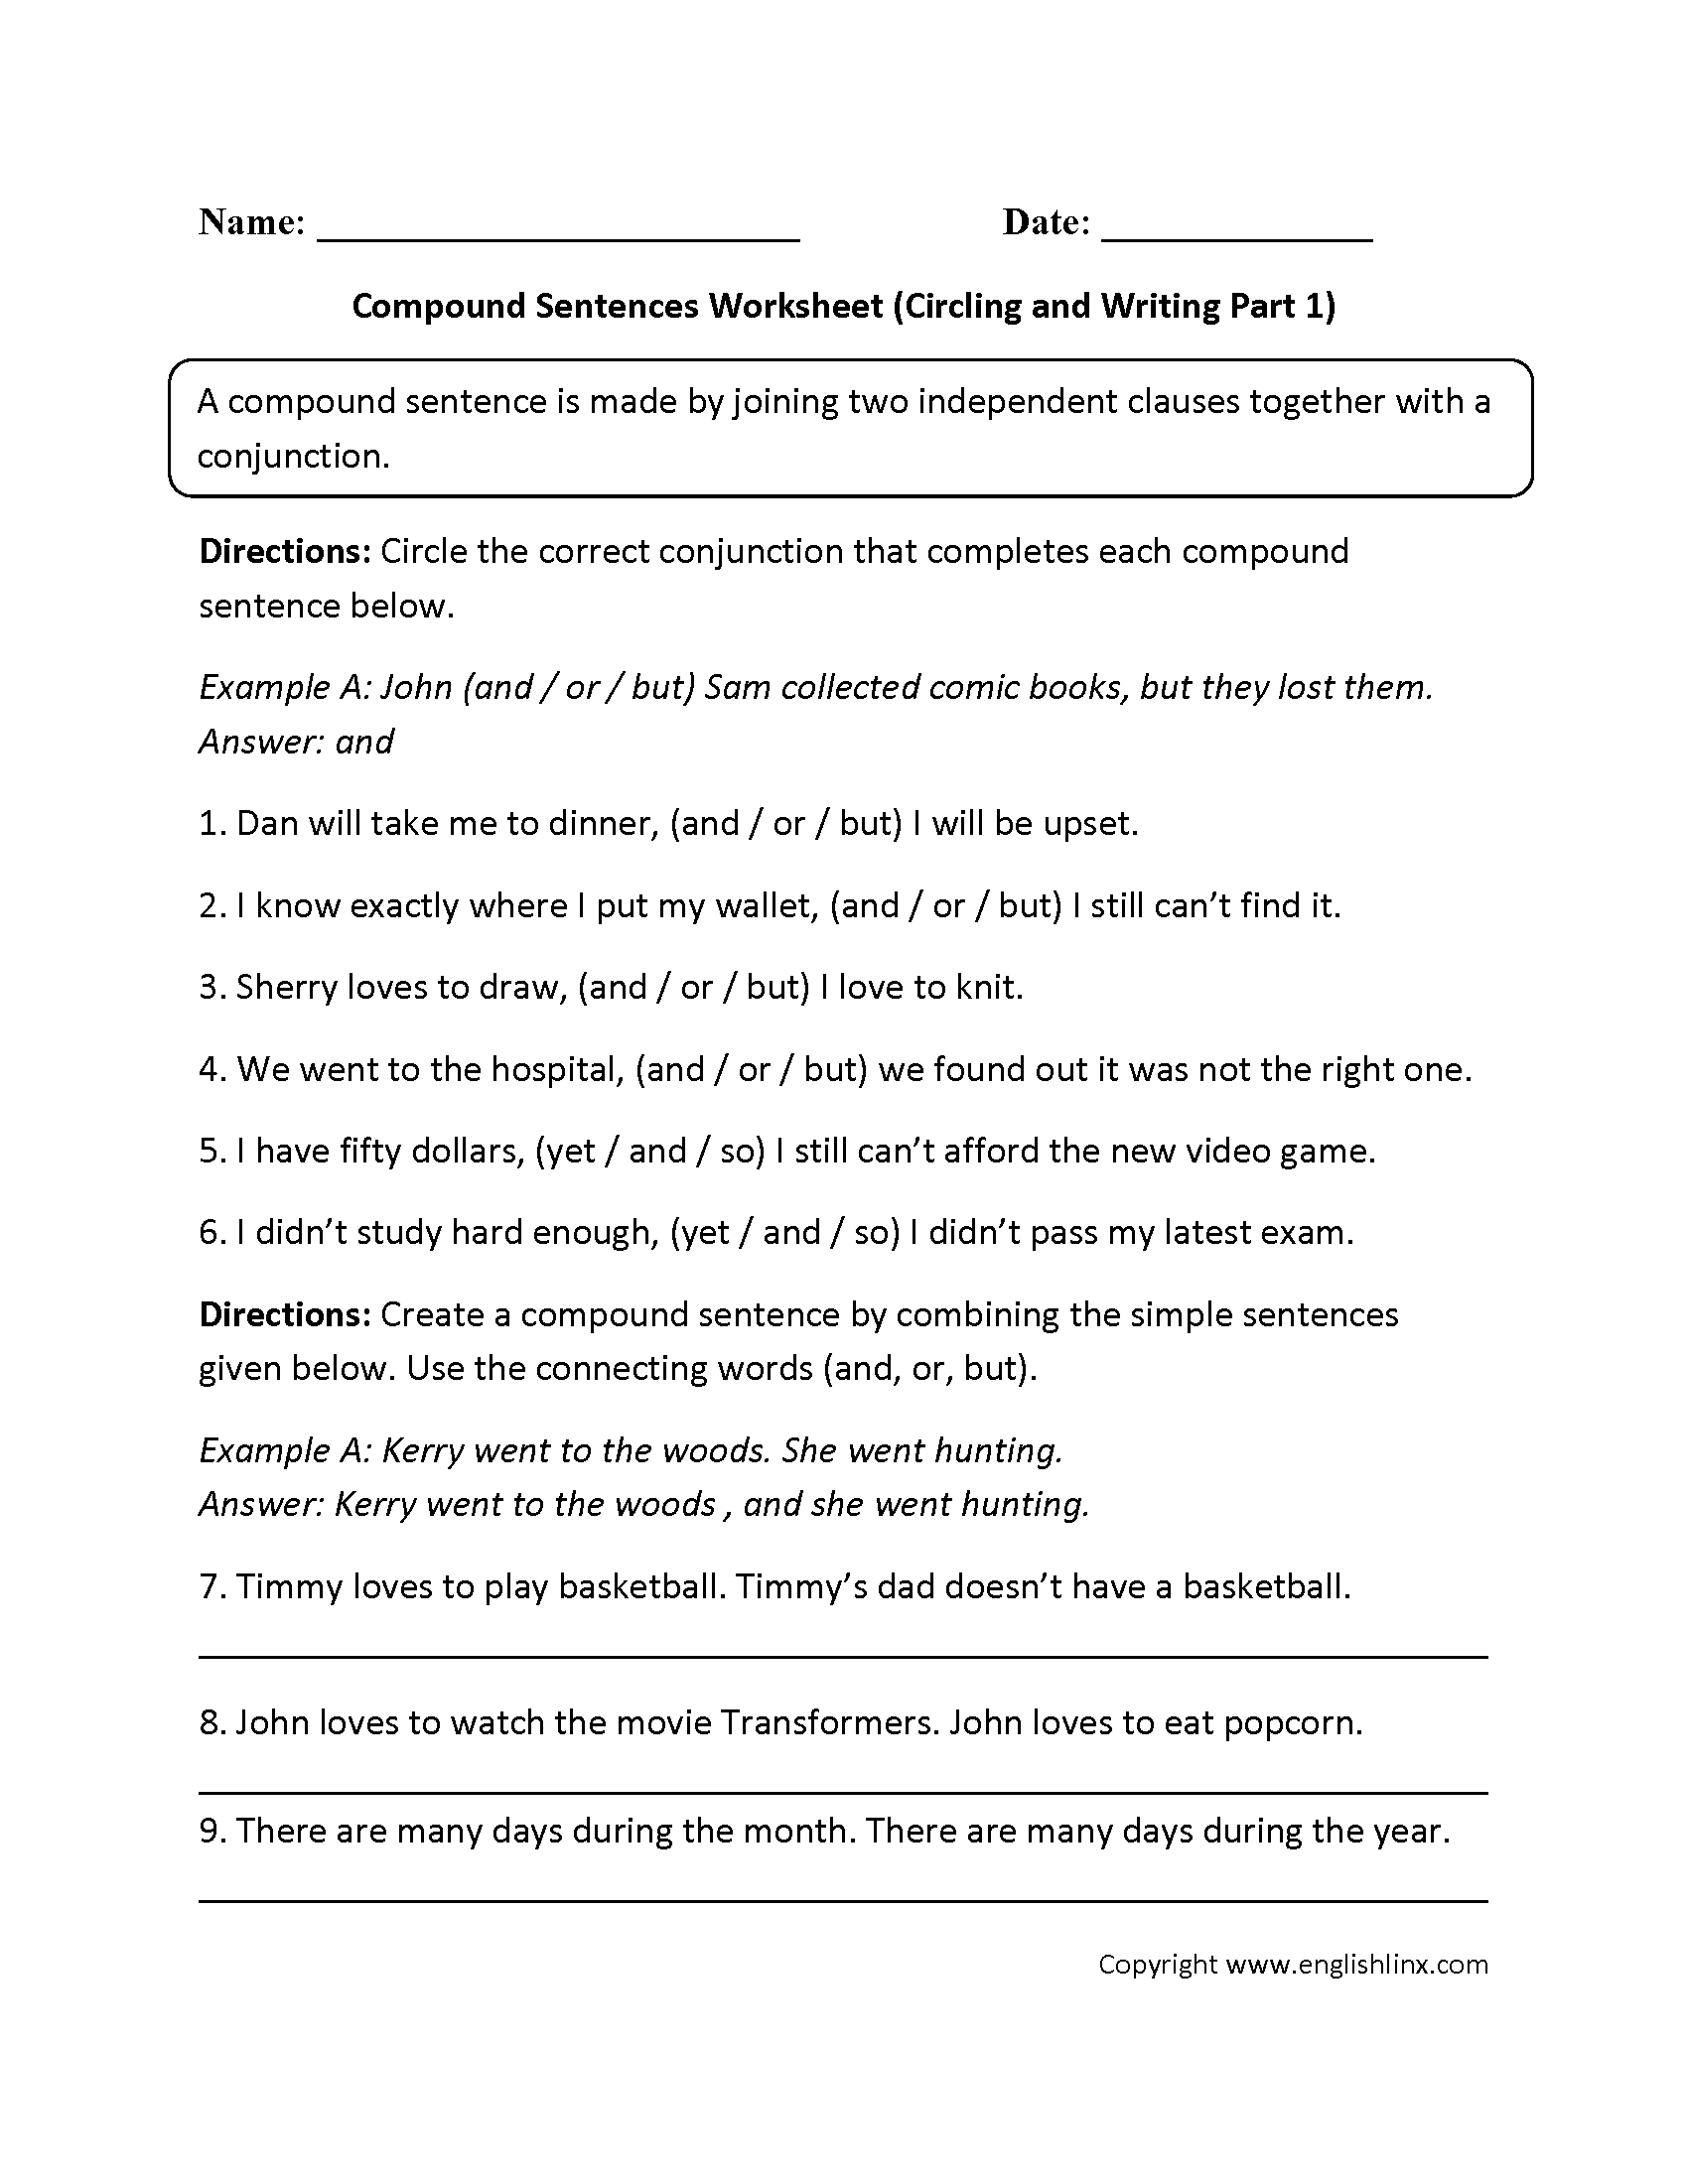 Practicing Compound Sentences Worksheet